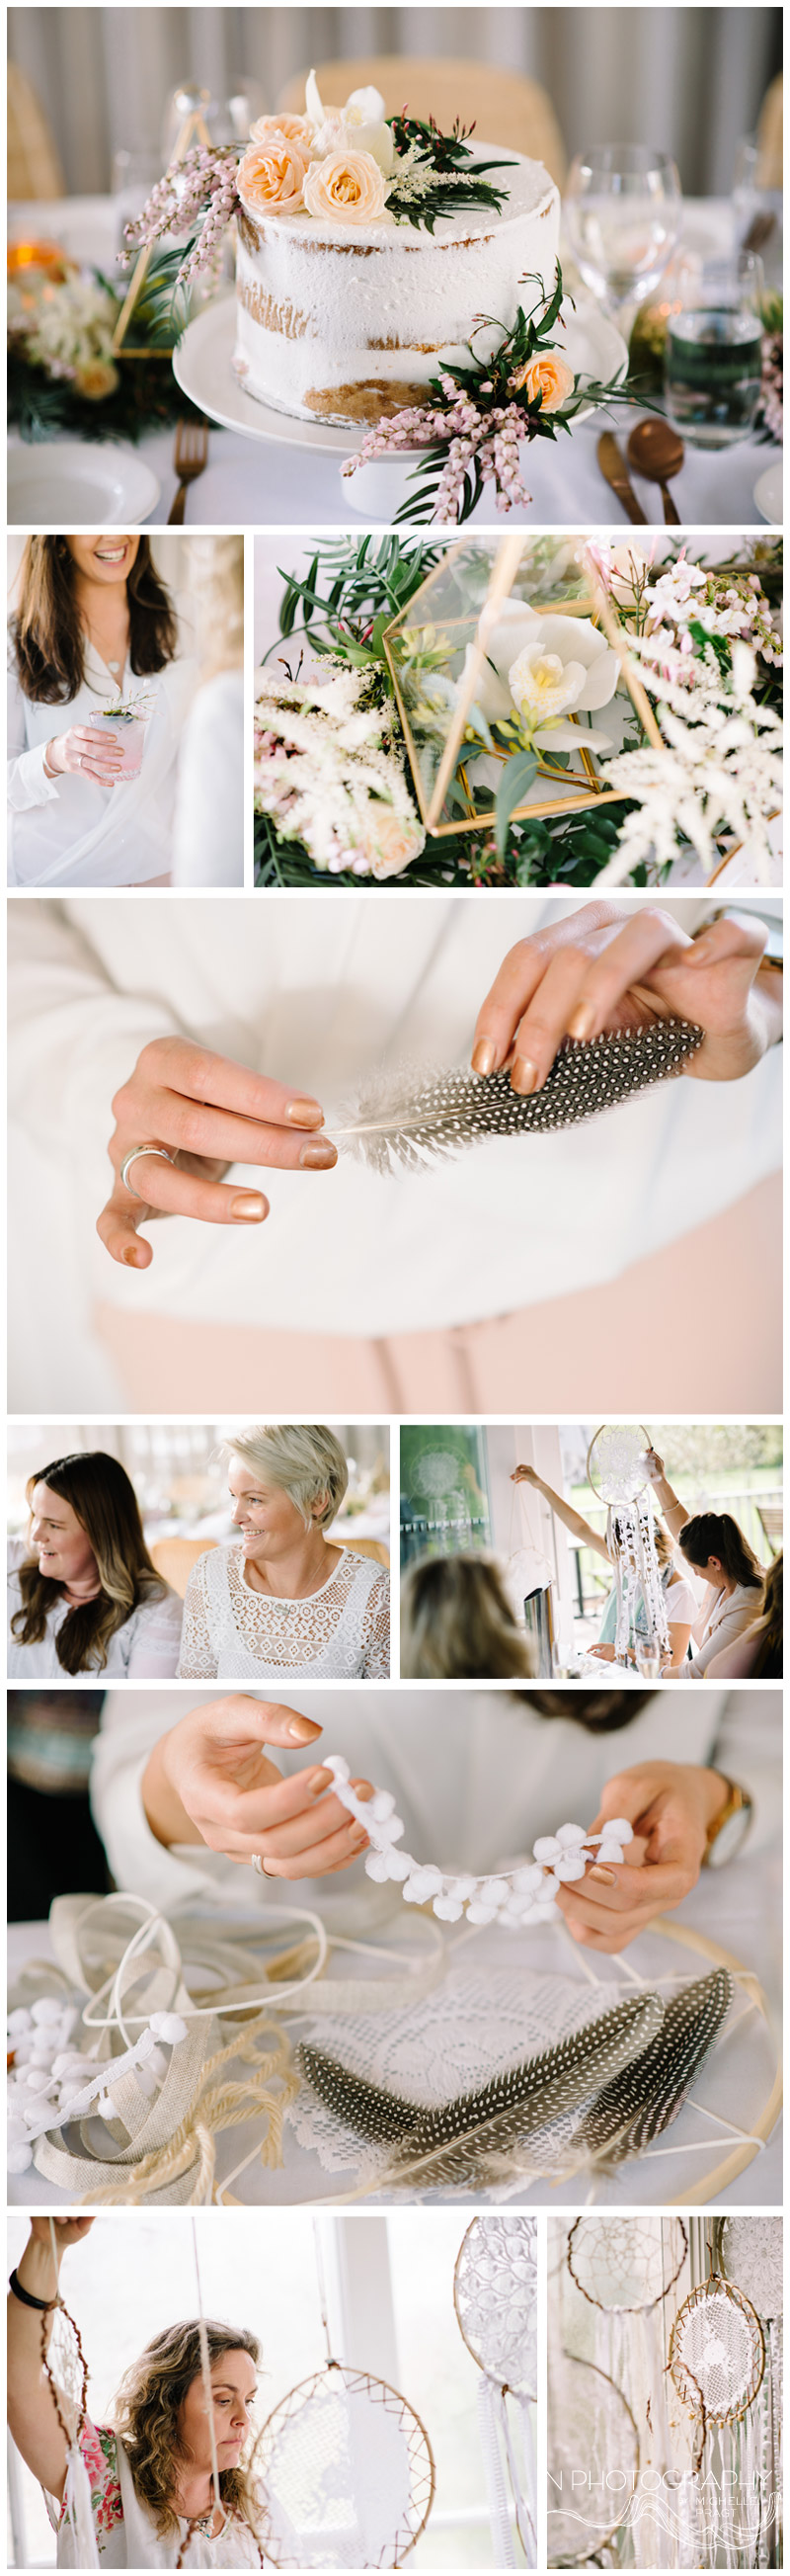 Mornington Peninsula wedding inspo at Stillwater at Crittenden